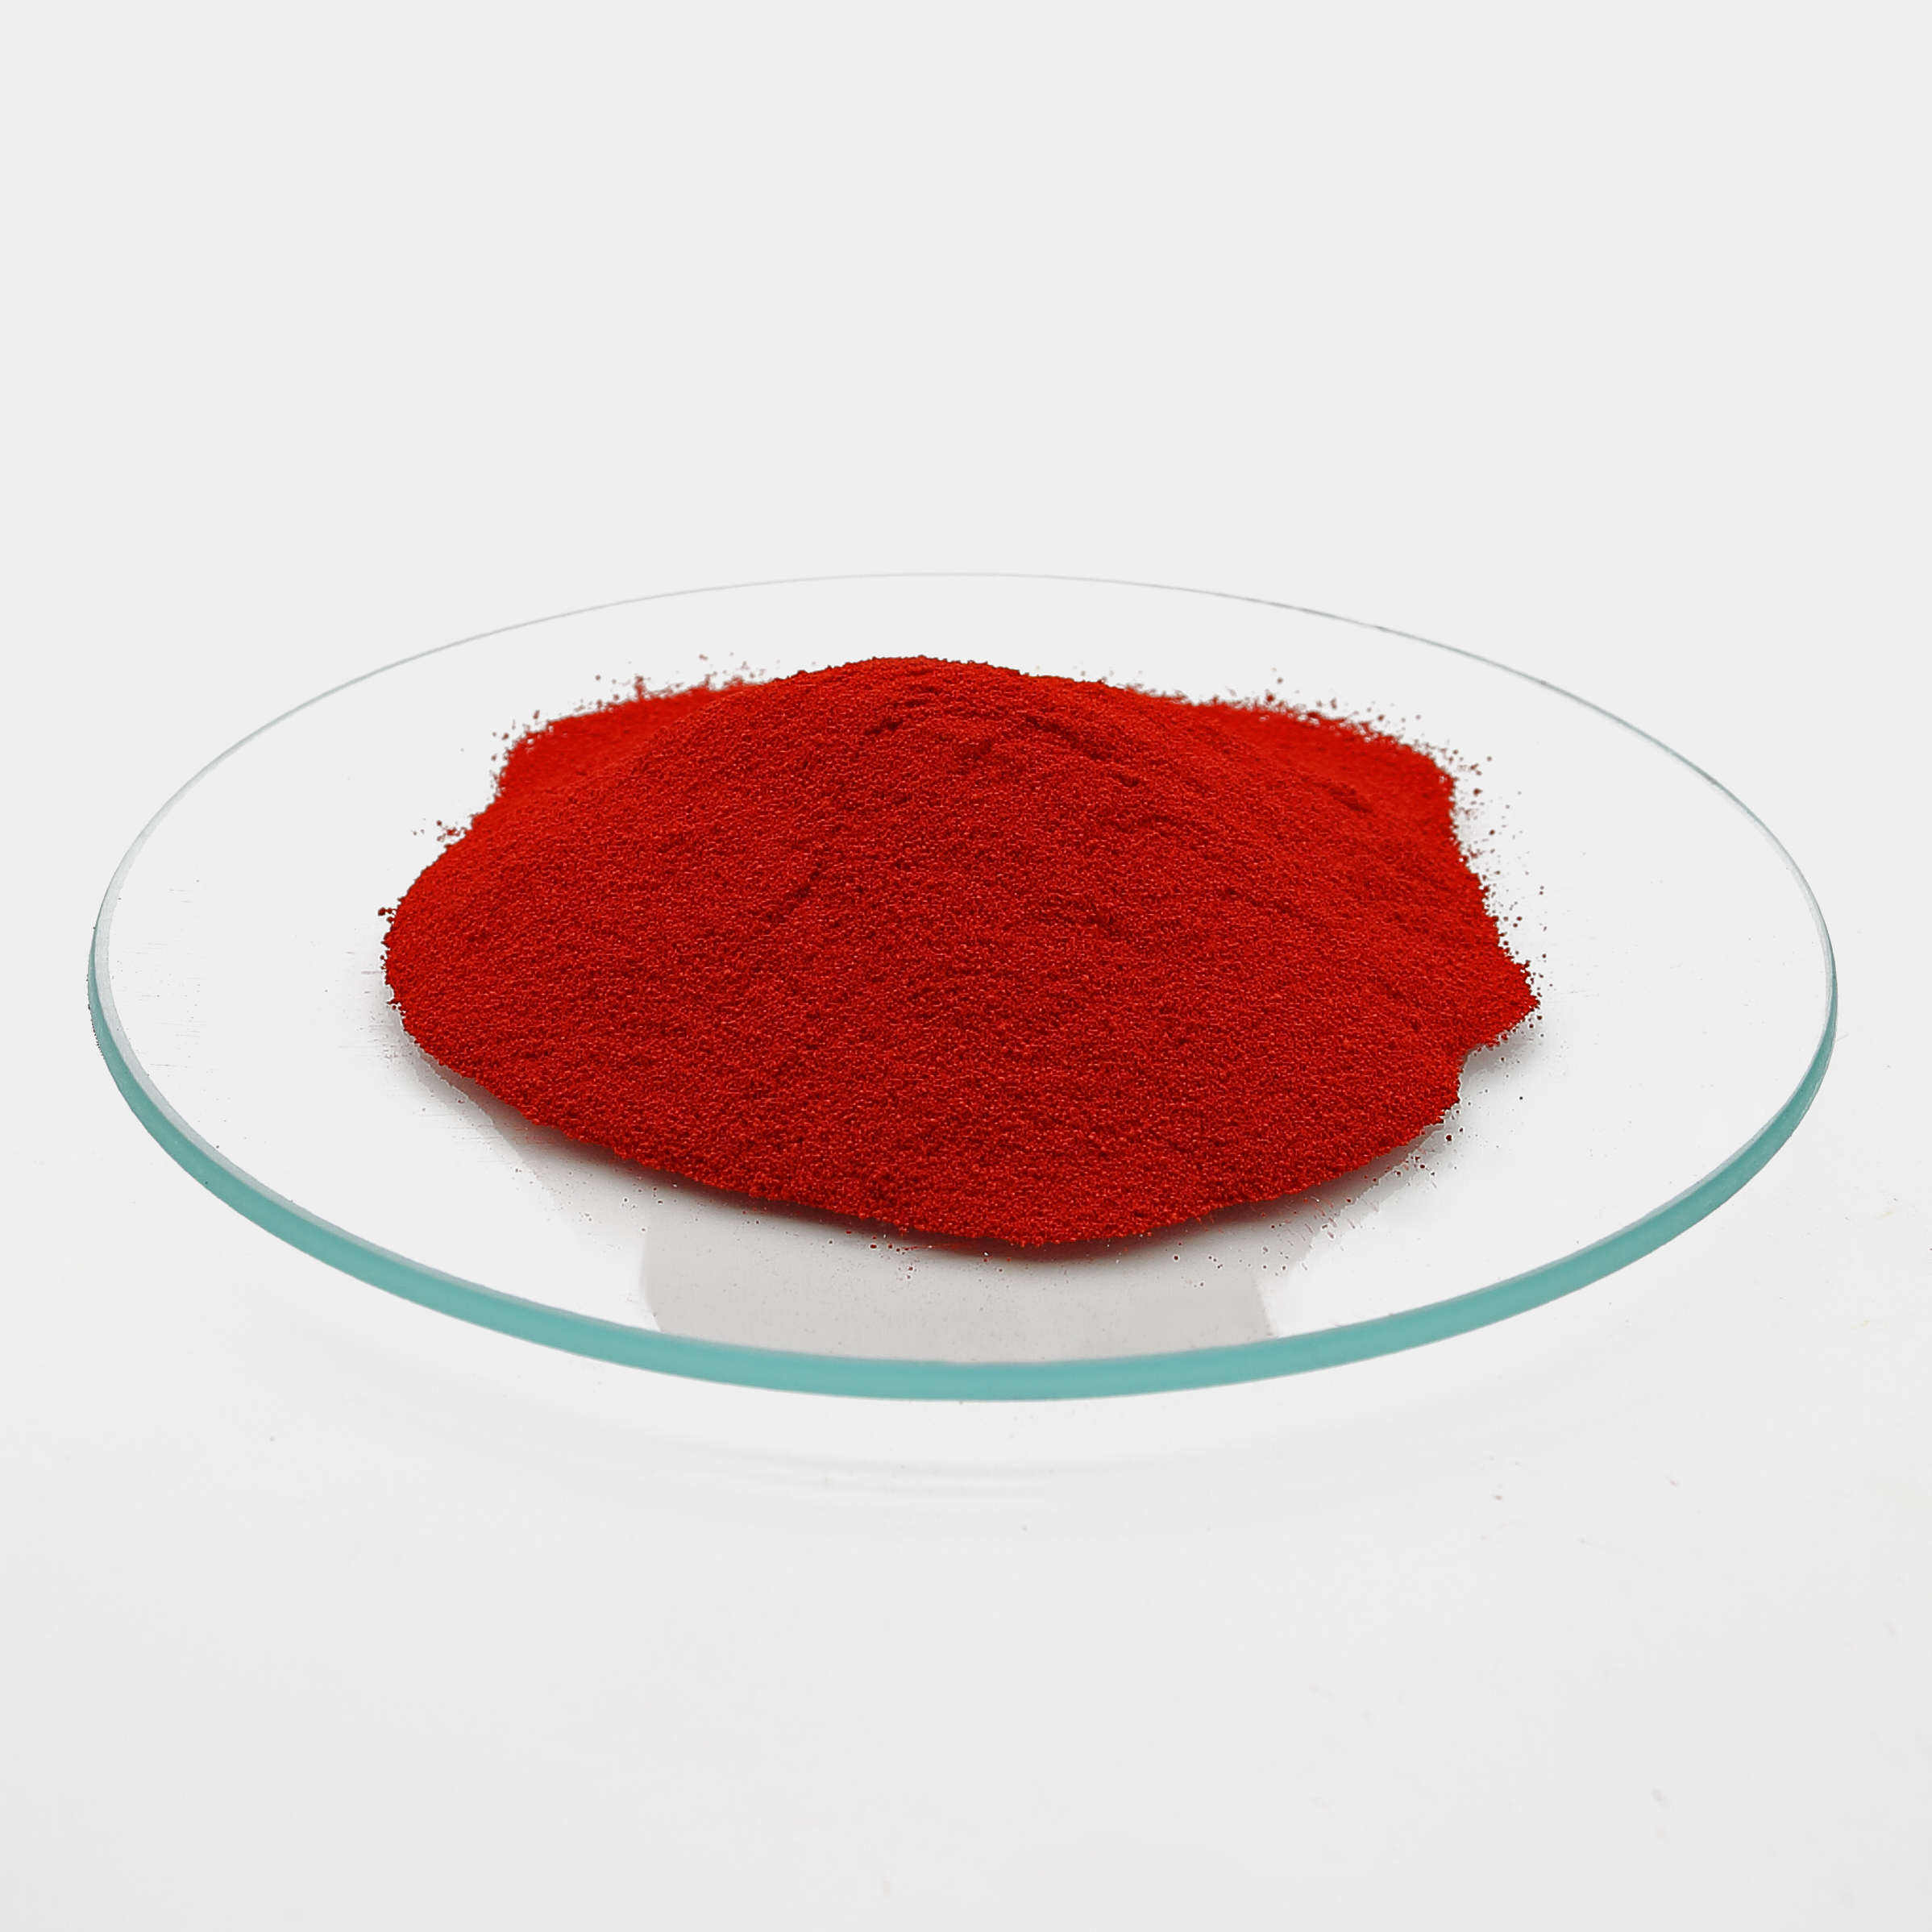 Paint Pigment Hot Sale General Purpose Organic Pigment DPP Red D20 For Paint Plastic Ink CI No.PR254 Pigment Red 254